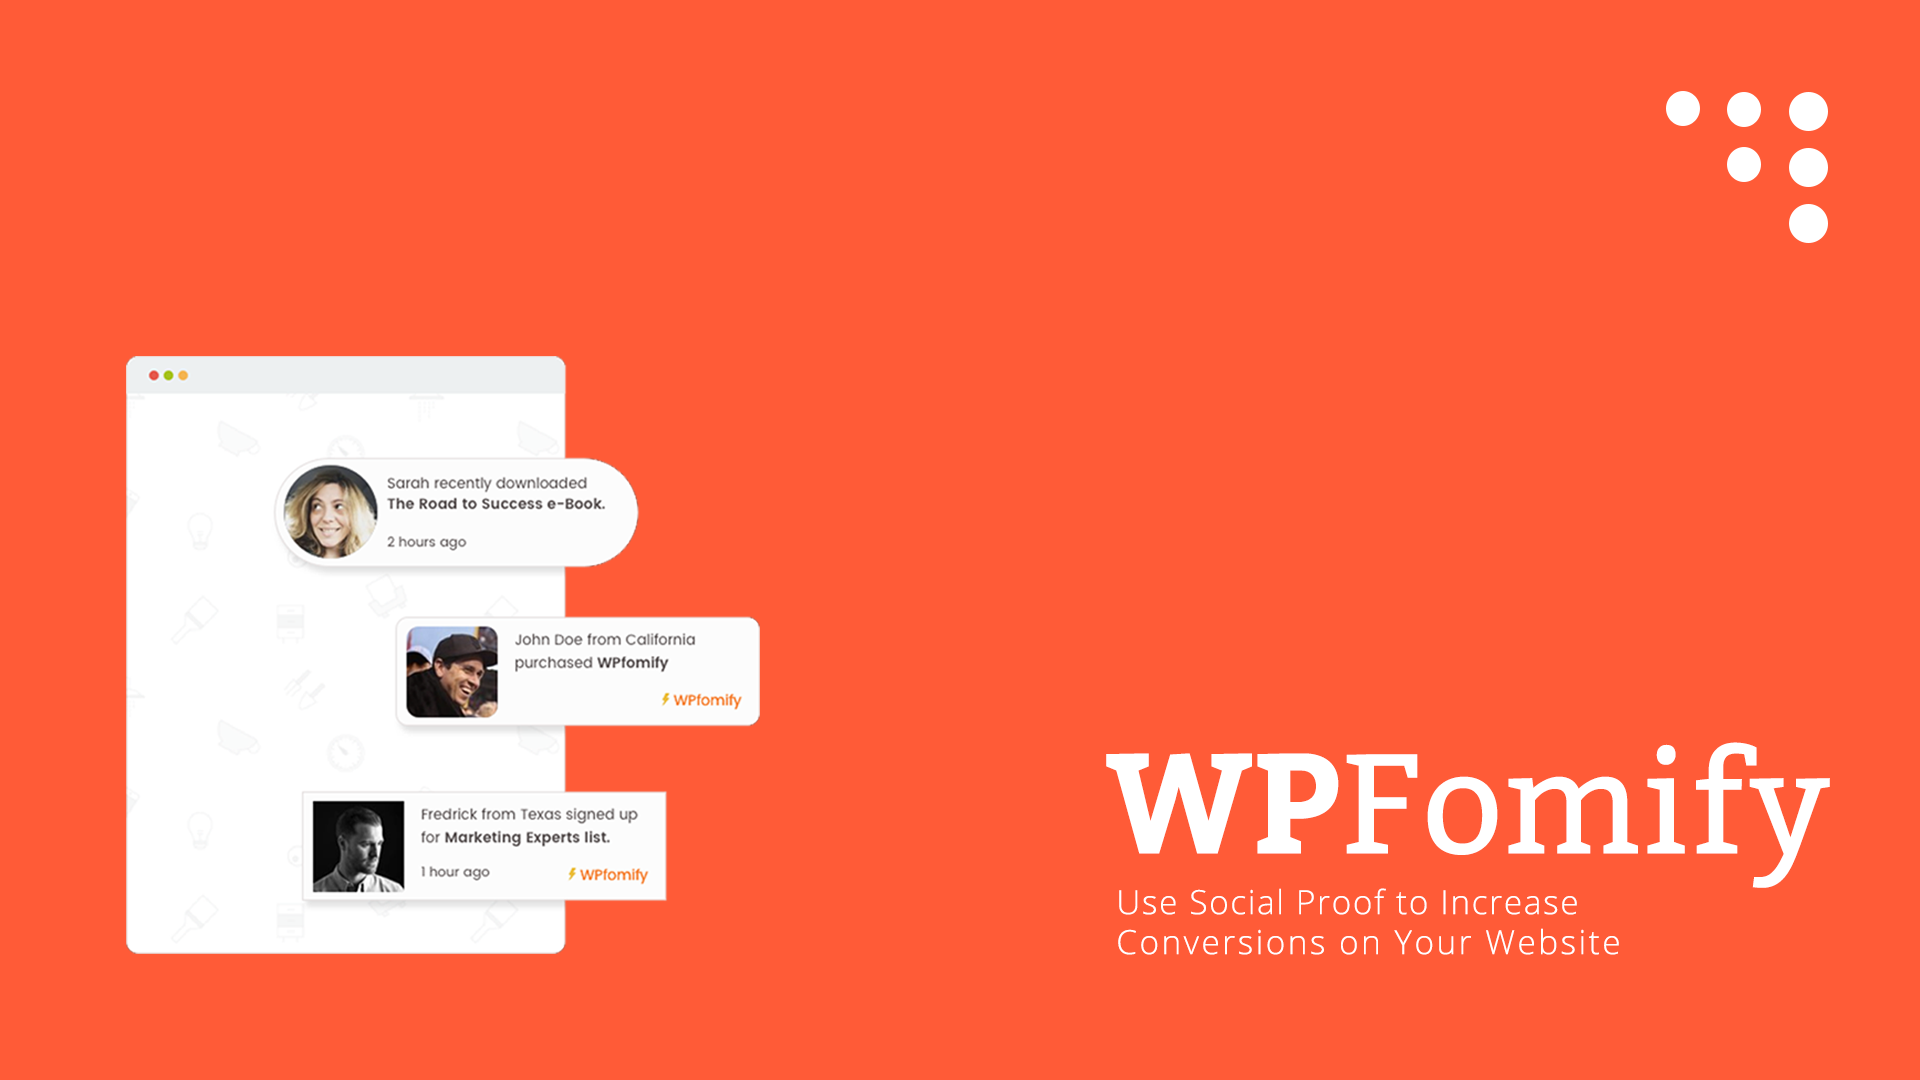 Use Social Proof Marketing to Increase Conversions With WPFomify Plugin 1 wpfomify Extensive Reviews